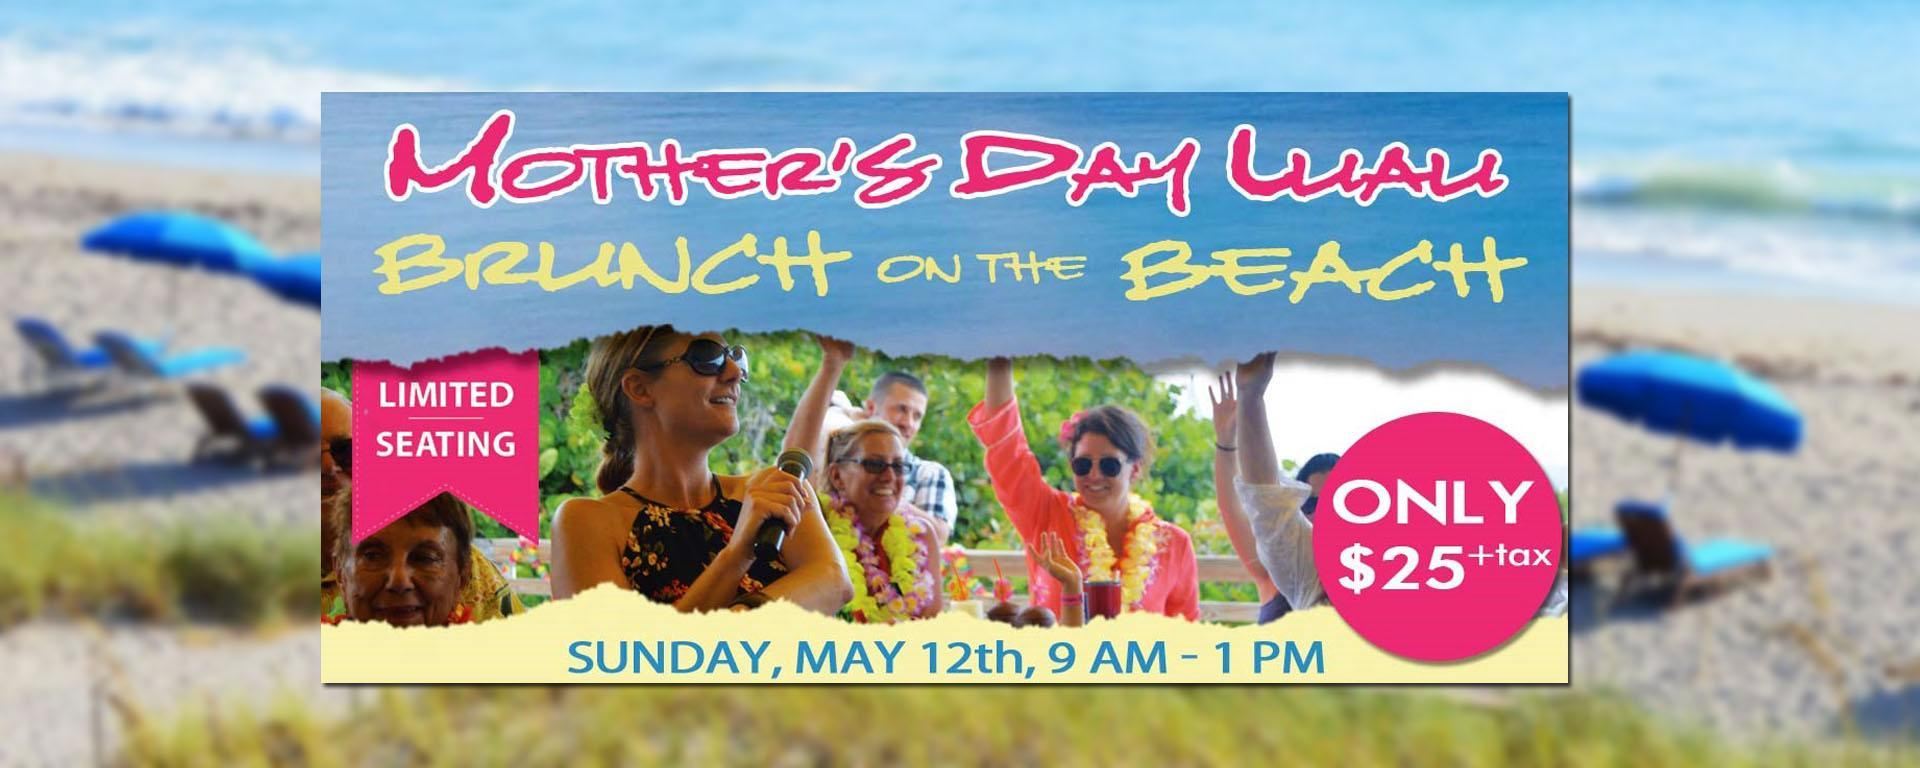 Mother's Day Luau Brunch on the Beach Sunday May 12, 9 a.m. to 1 p.m.